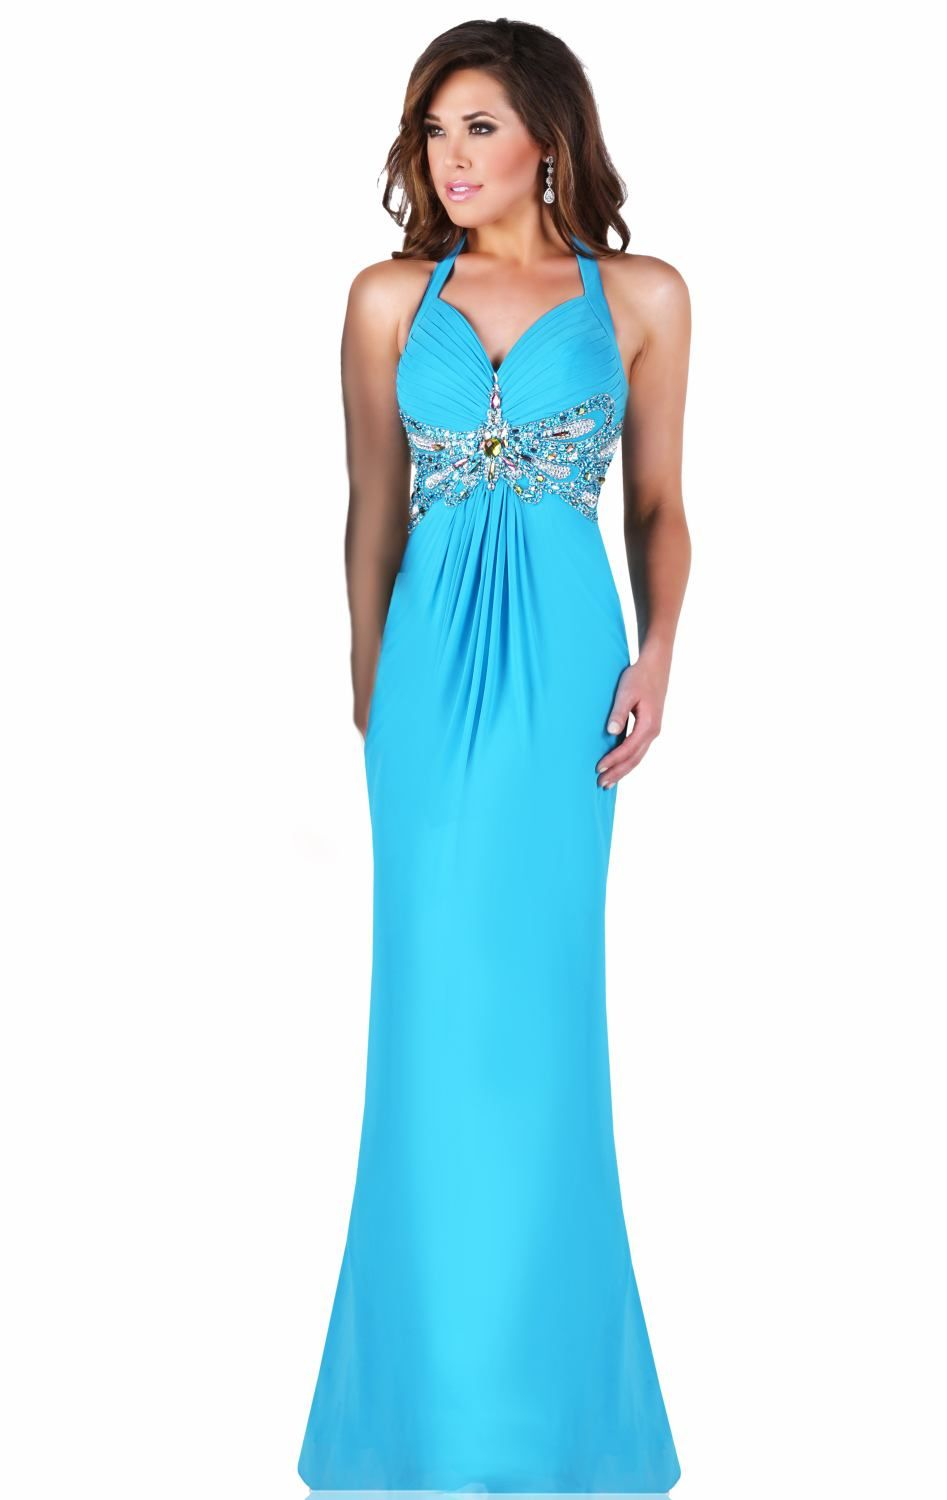 Teal halter gown by Karishma is available in a size 14.   Mardi Gras ...